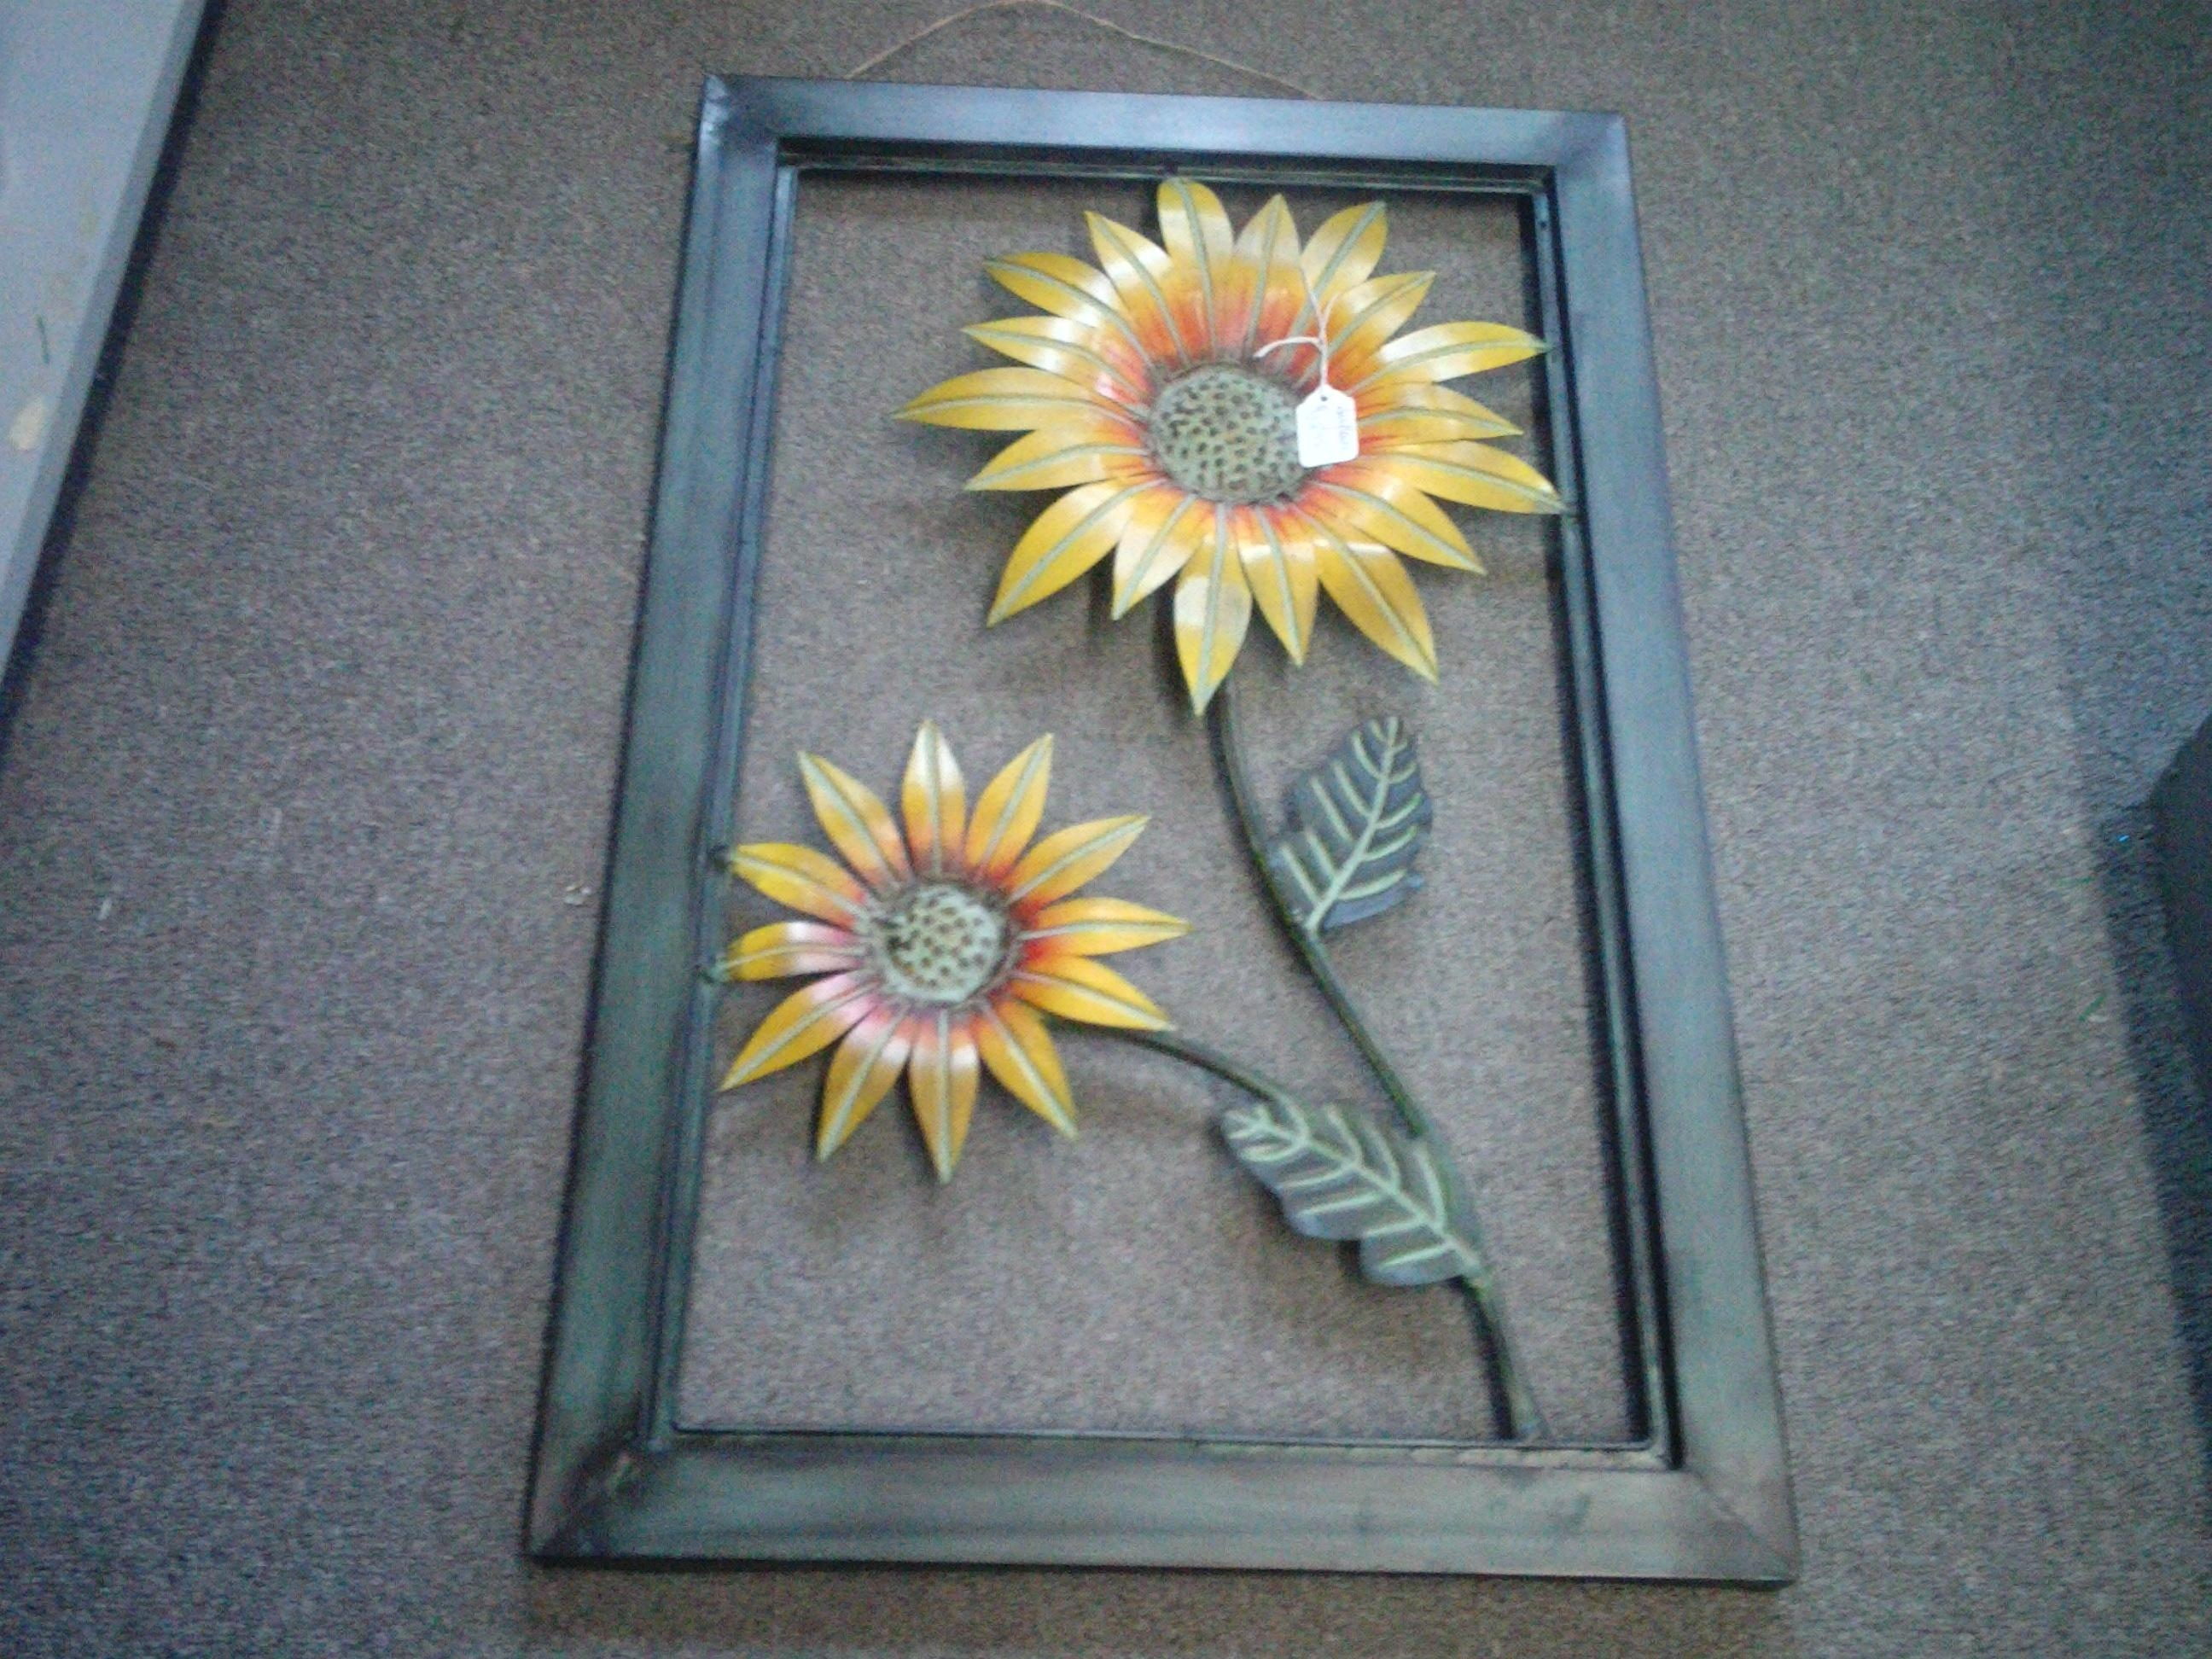 Sunflowers Wall Decor In The Kitchen Intended For Metal Sunflower Wall Art (View 17 of 20)